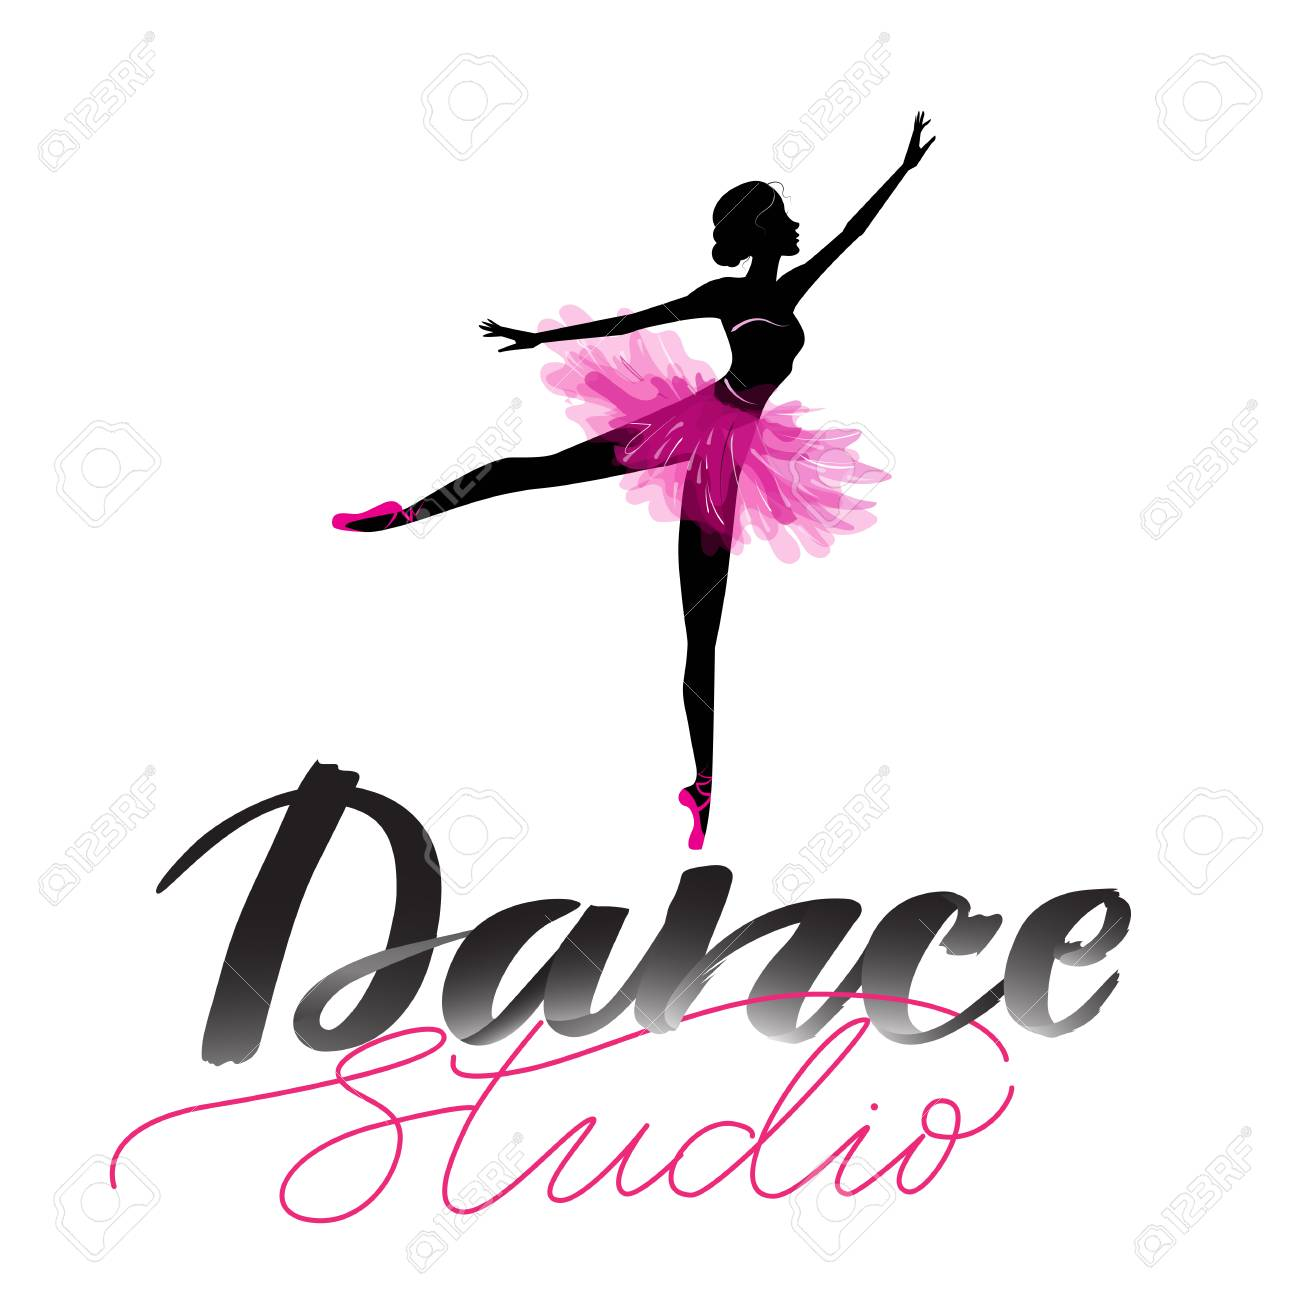 Logo Hand Written Sign For Ballet Or Dance Studio Silhouette Of Young Dancer And